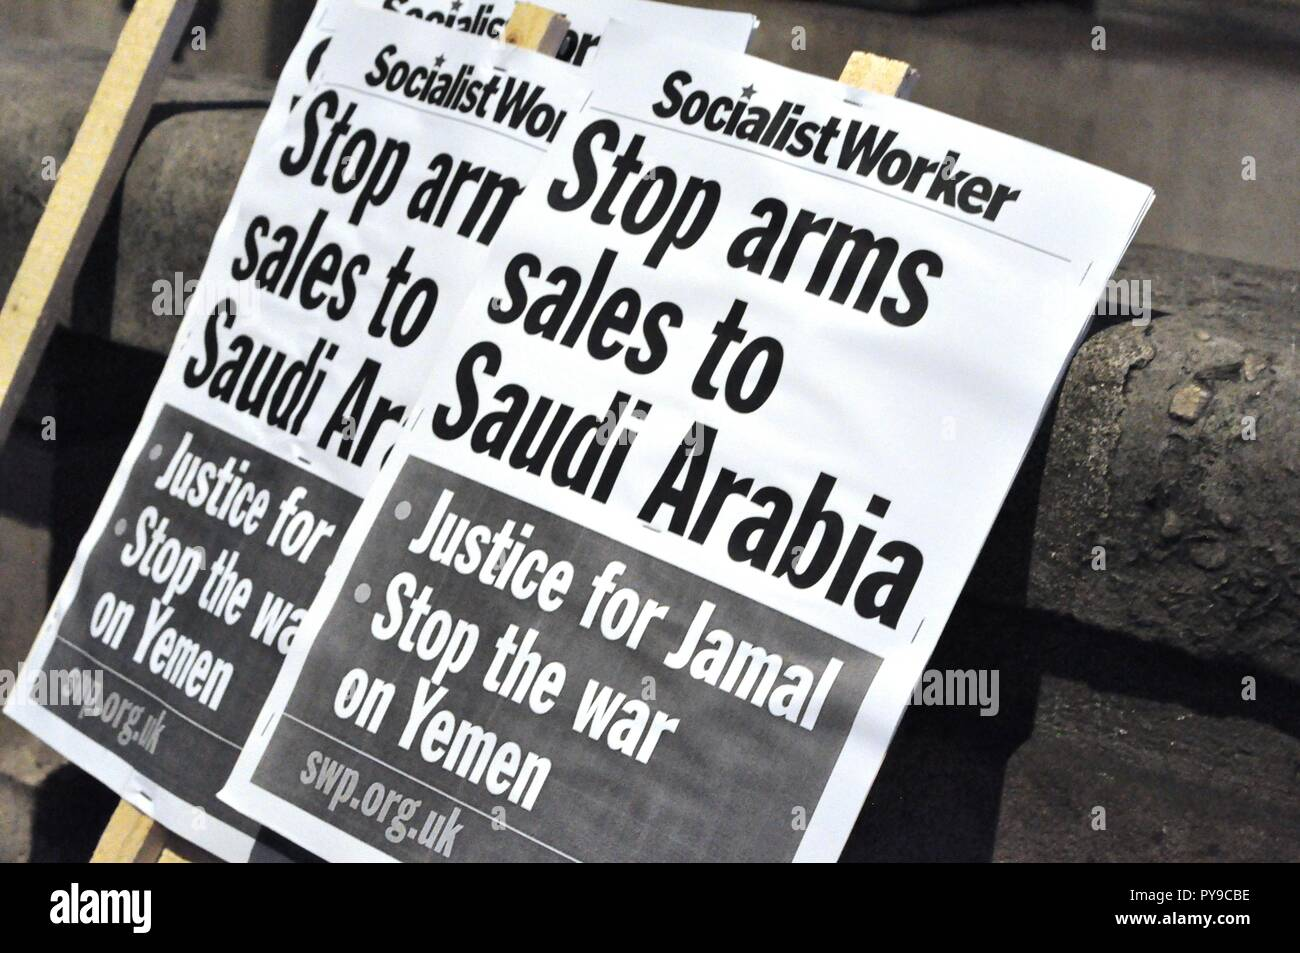 London,UK. 25th October 2018. Stop the War Coalition organize a demonstration infront of the Saudi Embassy in London.'Stop arms sales to Saudi Arabia' - Stock Image